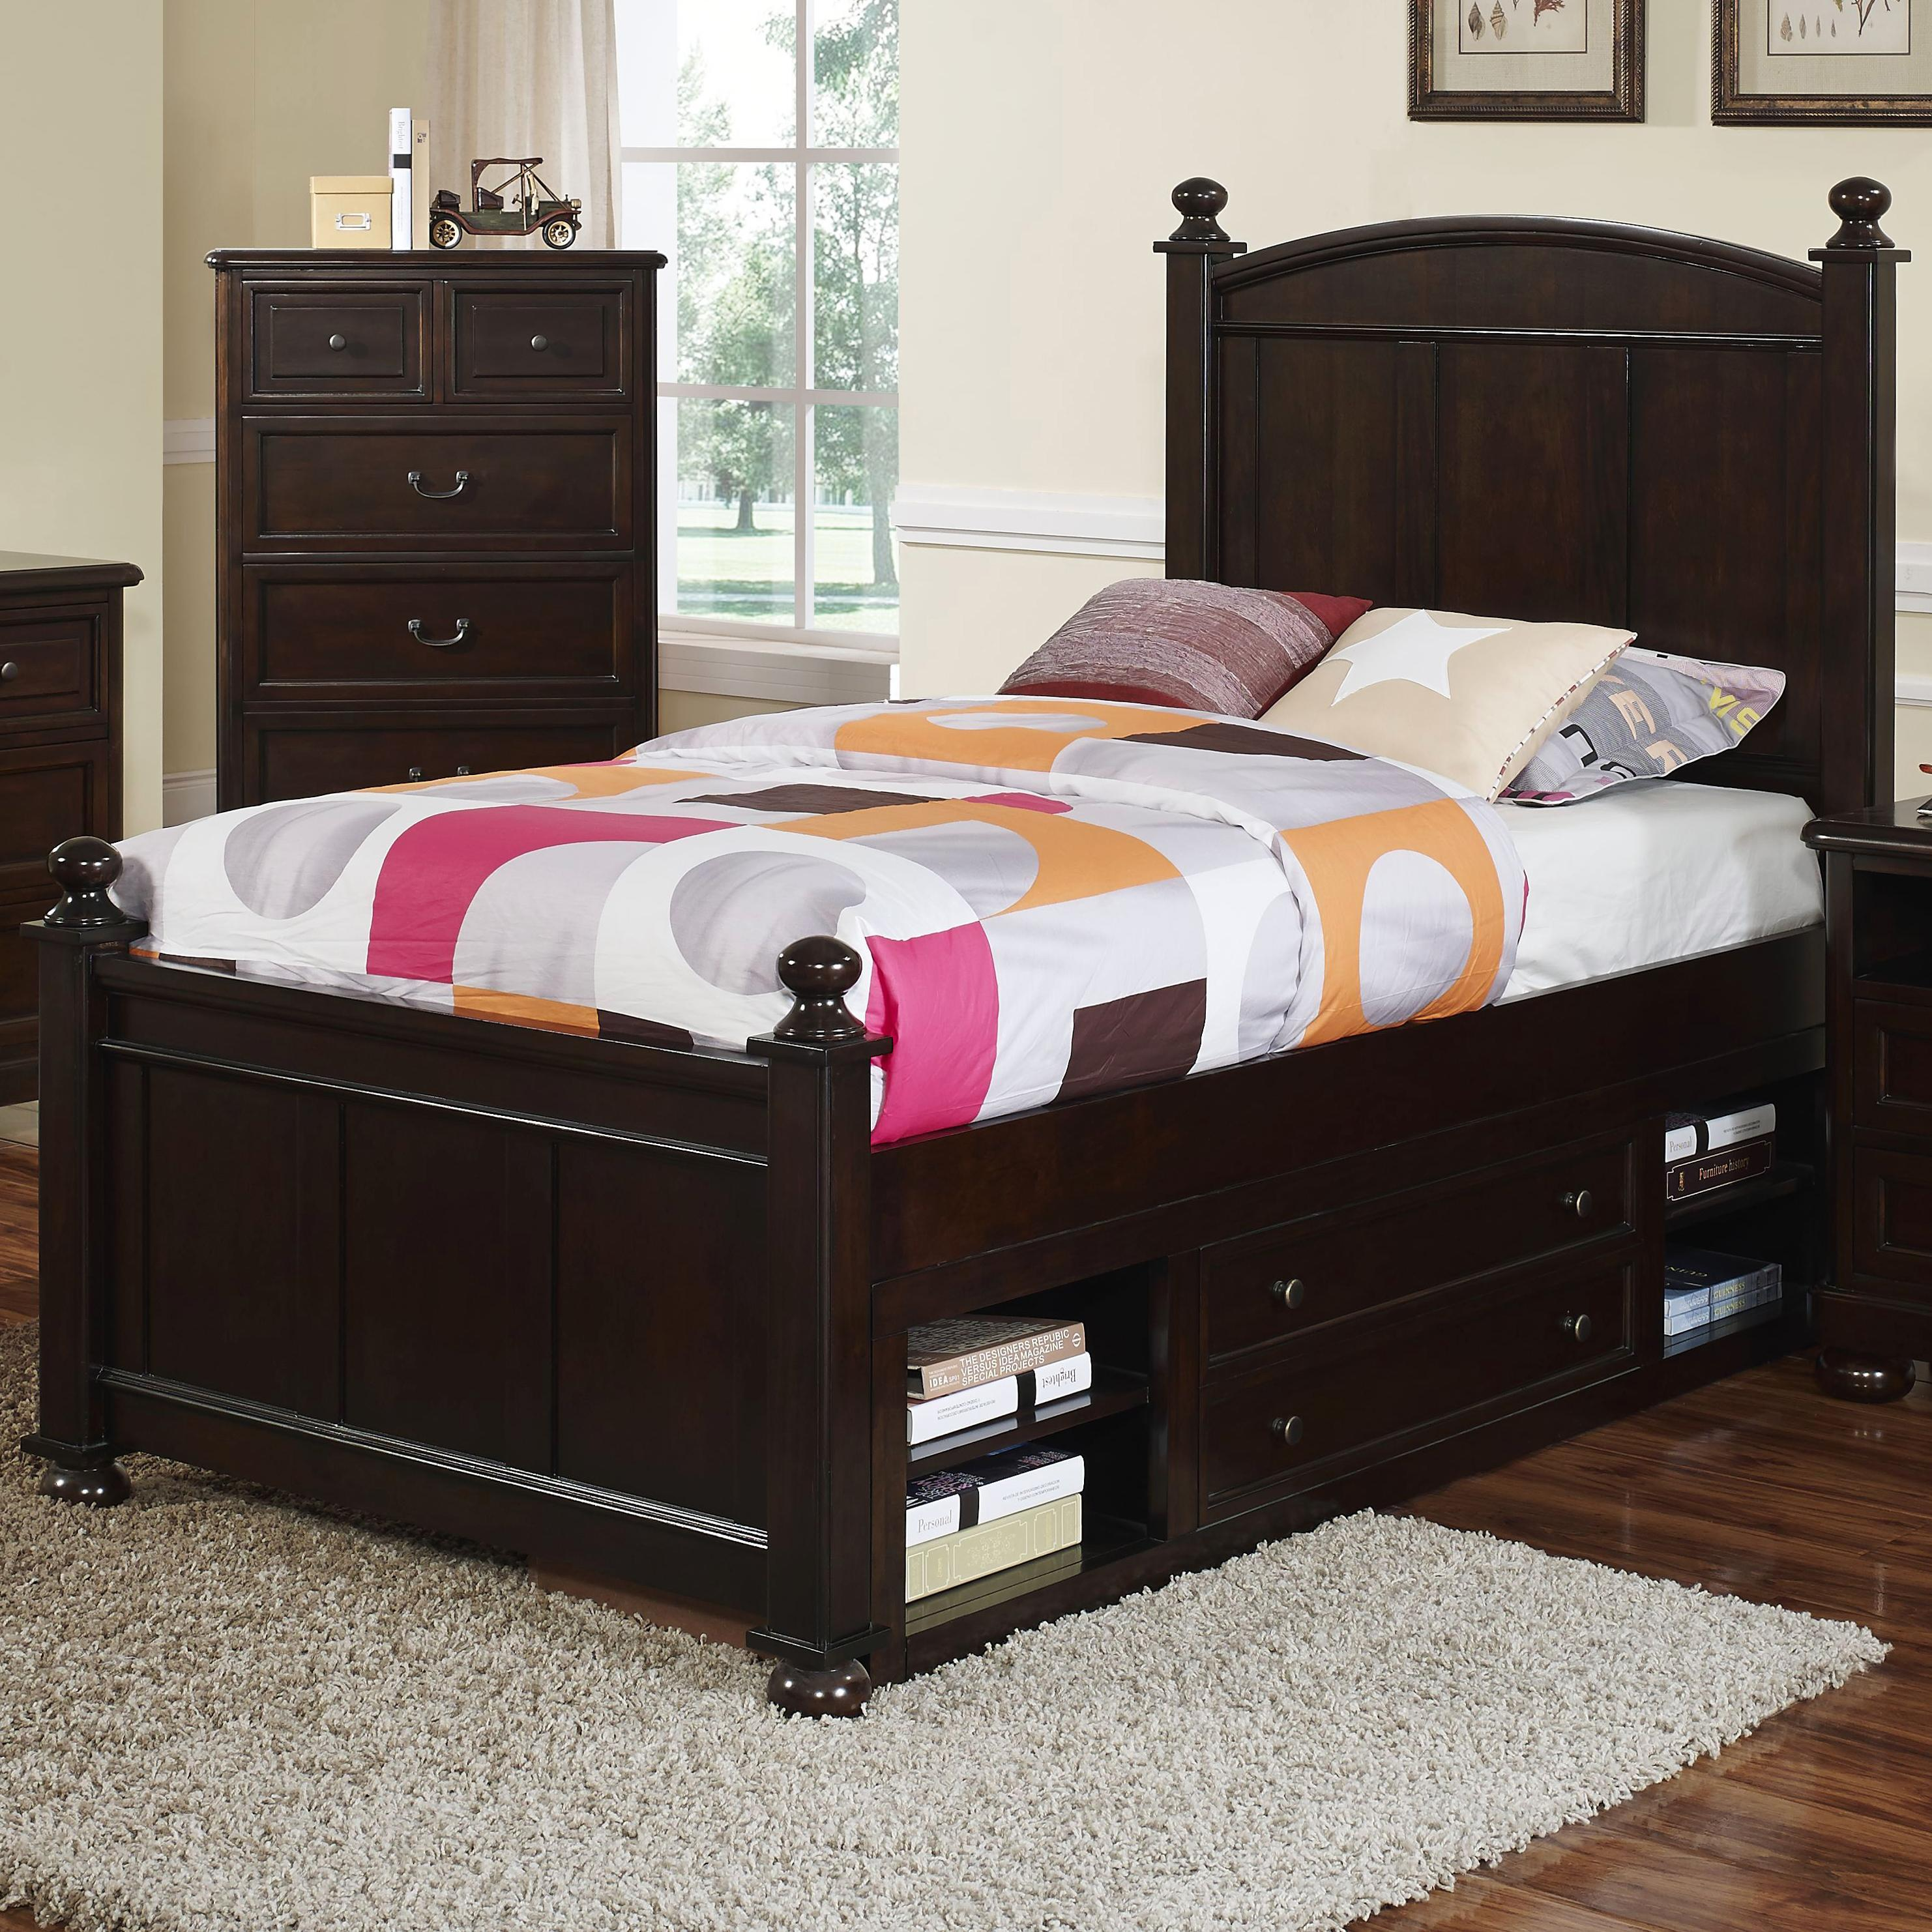 New Classic Canyon Ridge Twin Panel Bed with Storage - Item Number: 05-230-510+520+530+598